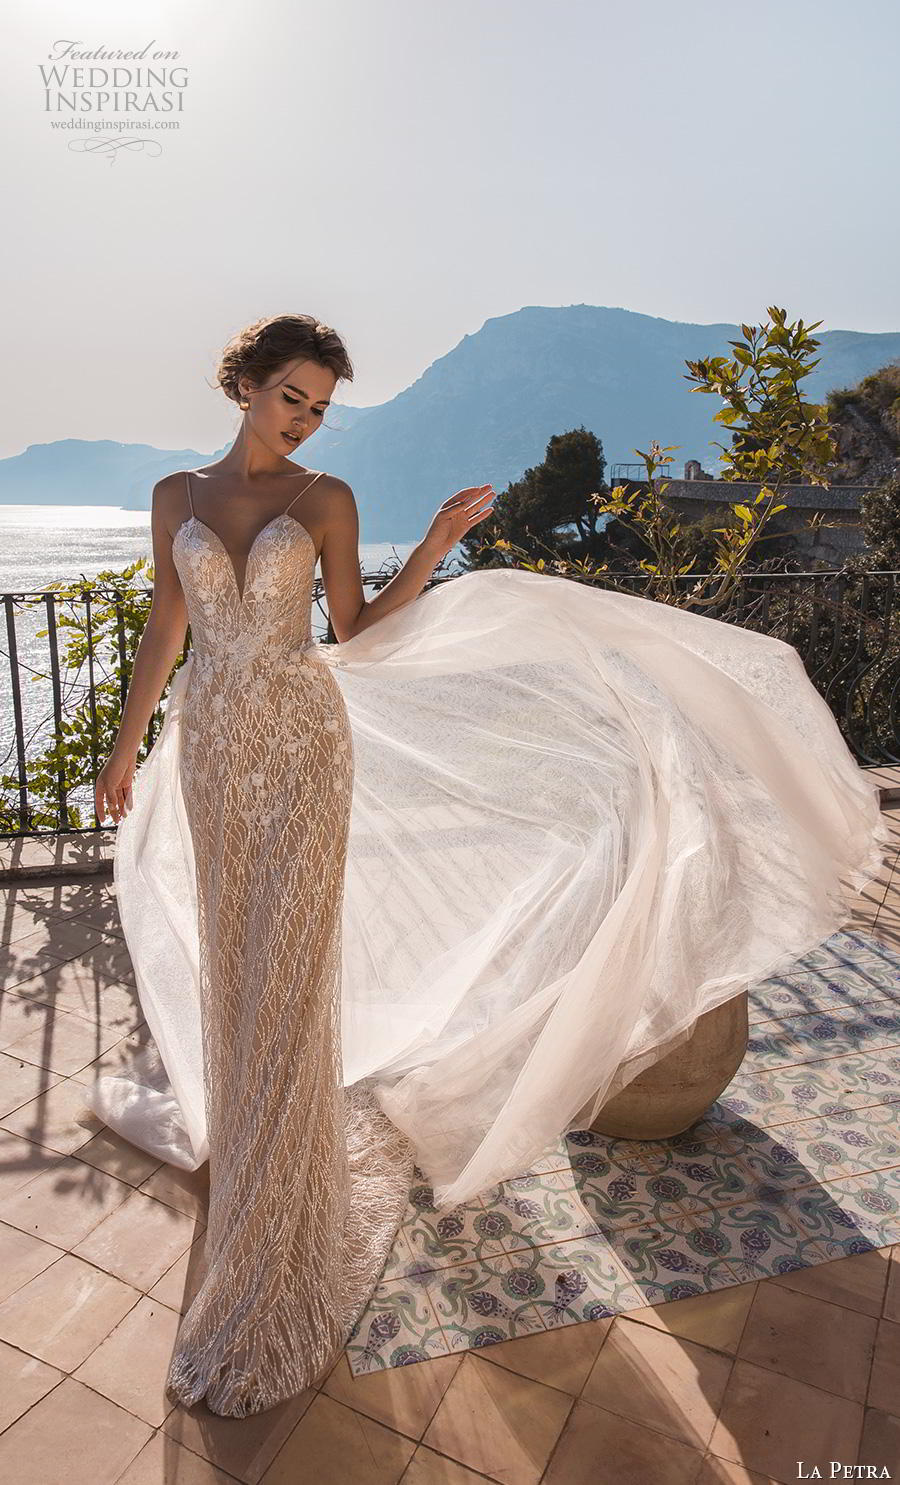 la petra 2019 bridal spaghetti strap dee plunging sweetheart neckline full embellishment elegant glamorous sheath wedding dress open back chapel train (14) mv